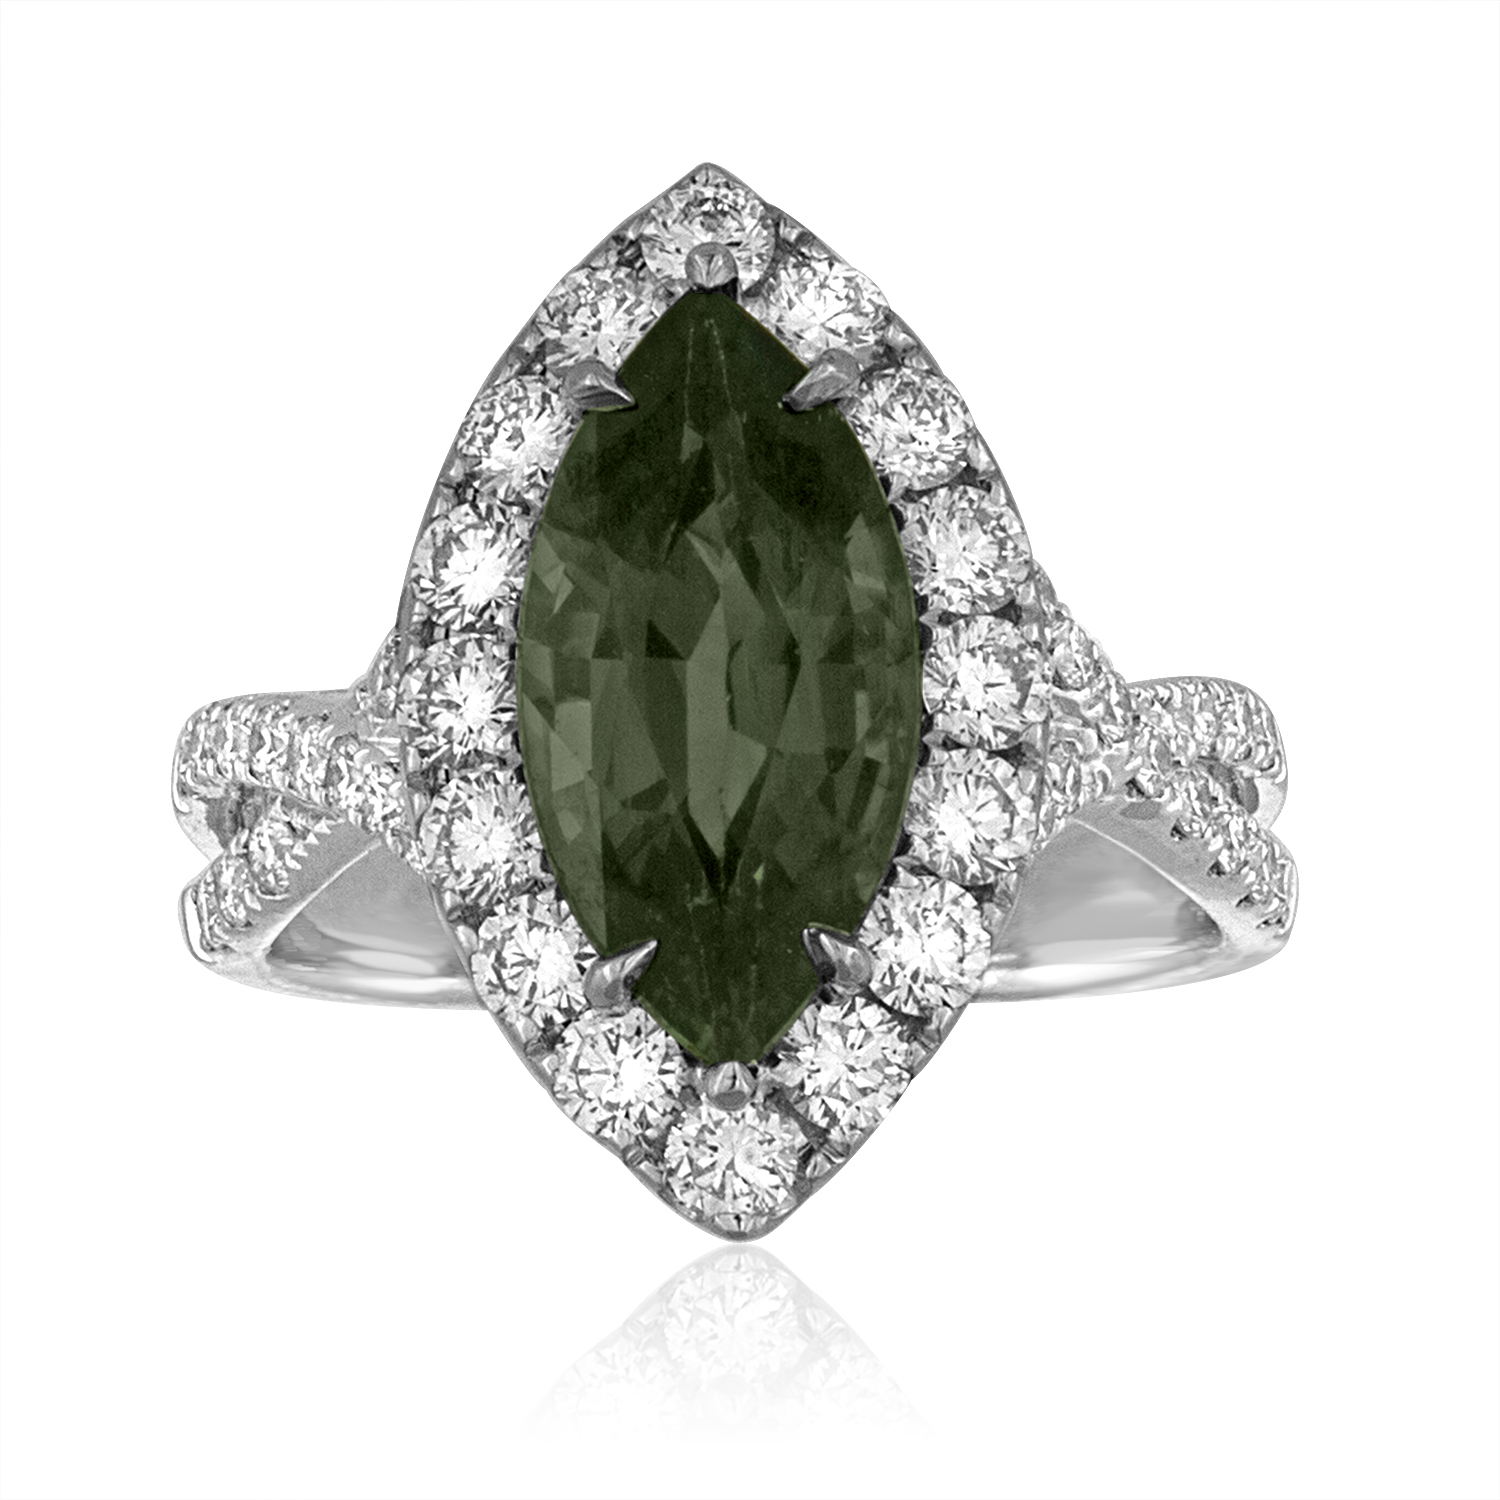 engagement ct products solitaire diamond ways gemstone ring dsc sz marquise